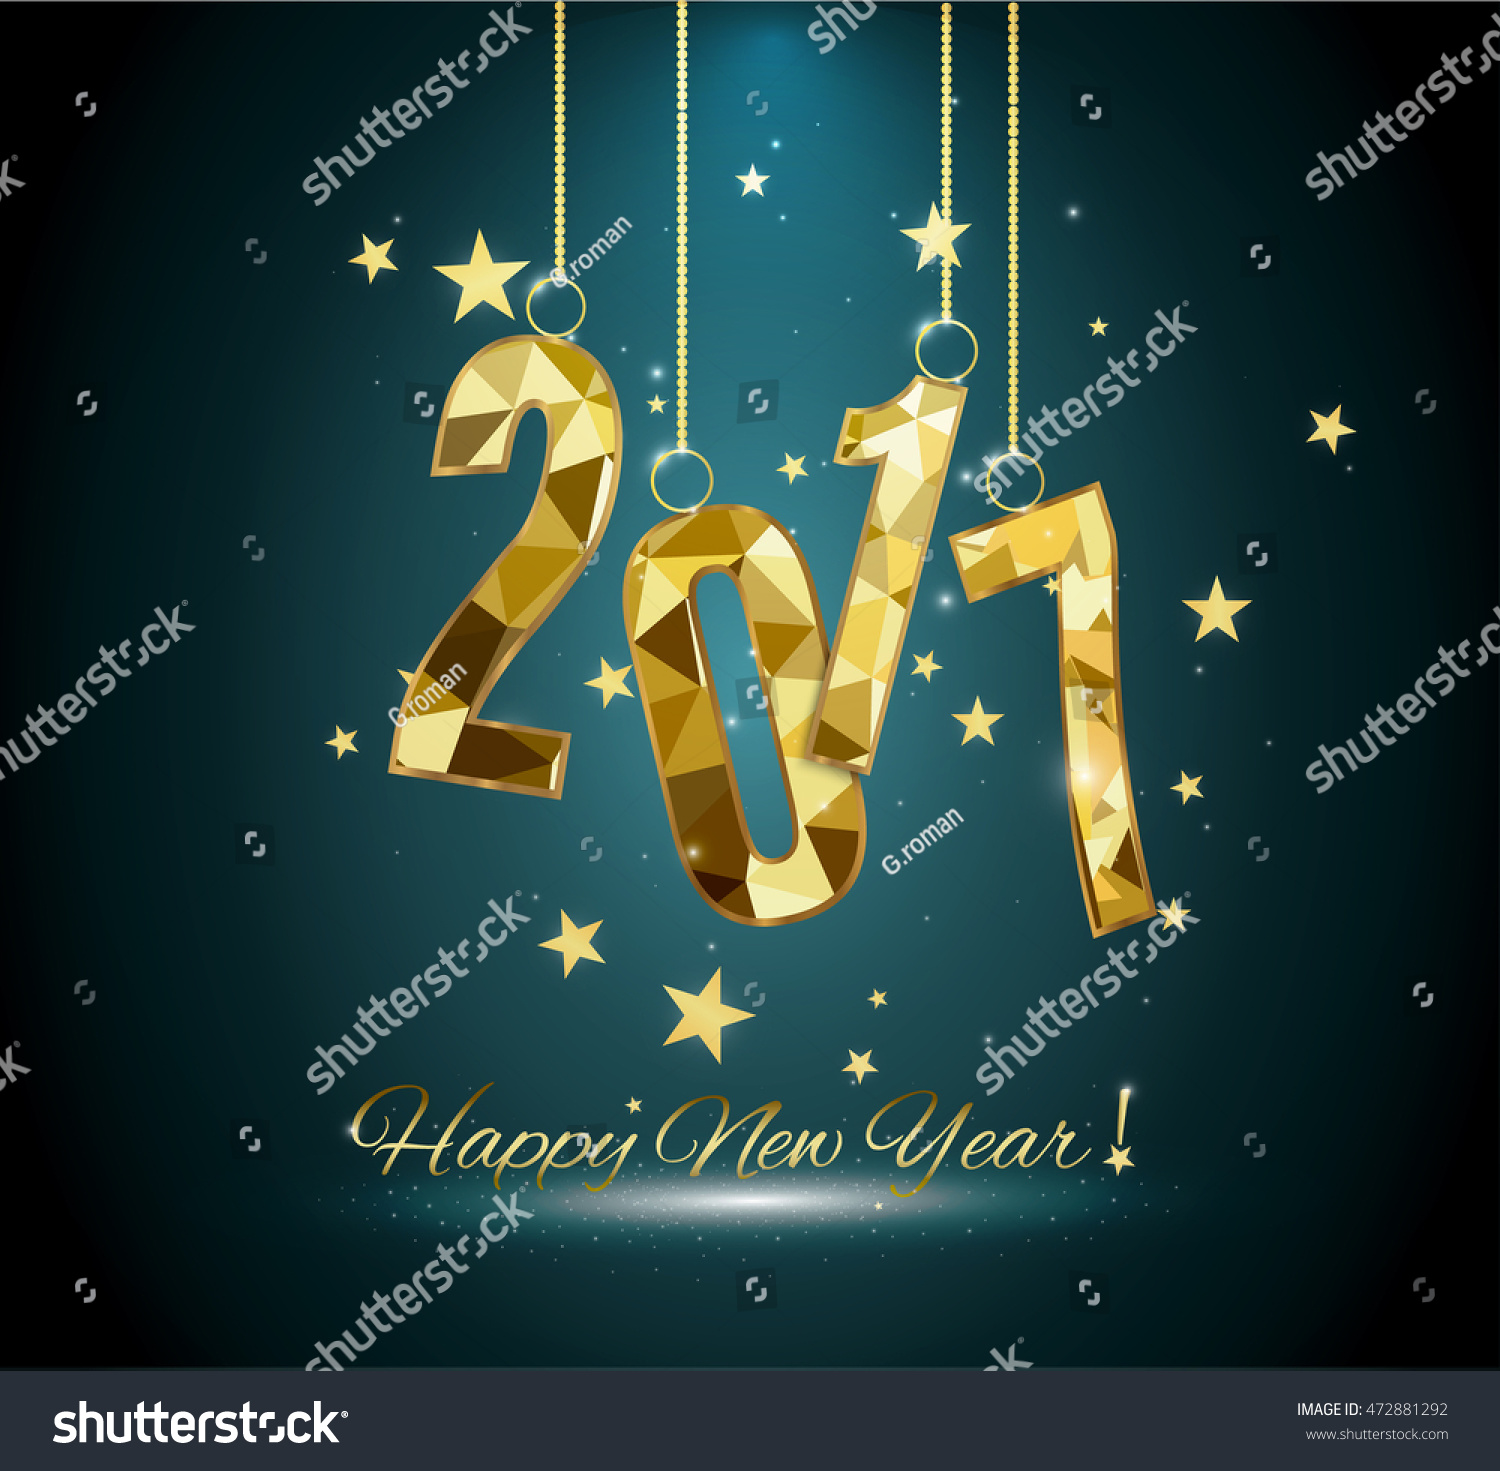 Happy New Year and Merry Christmas 2017 #472881292